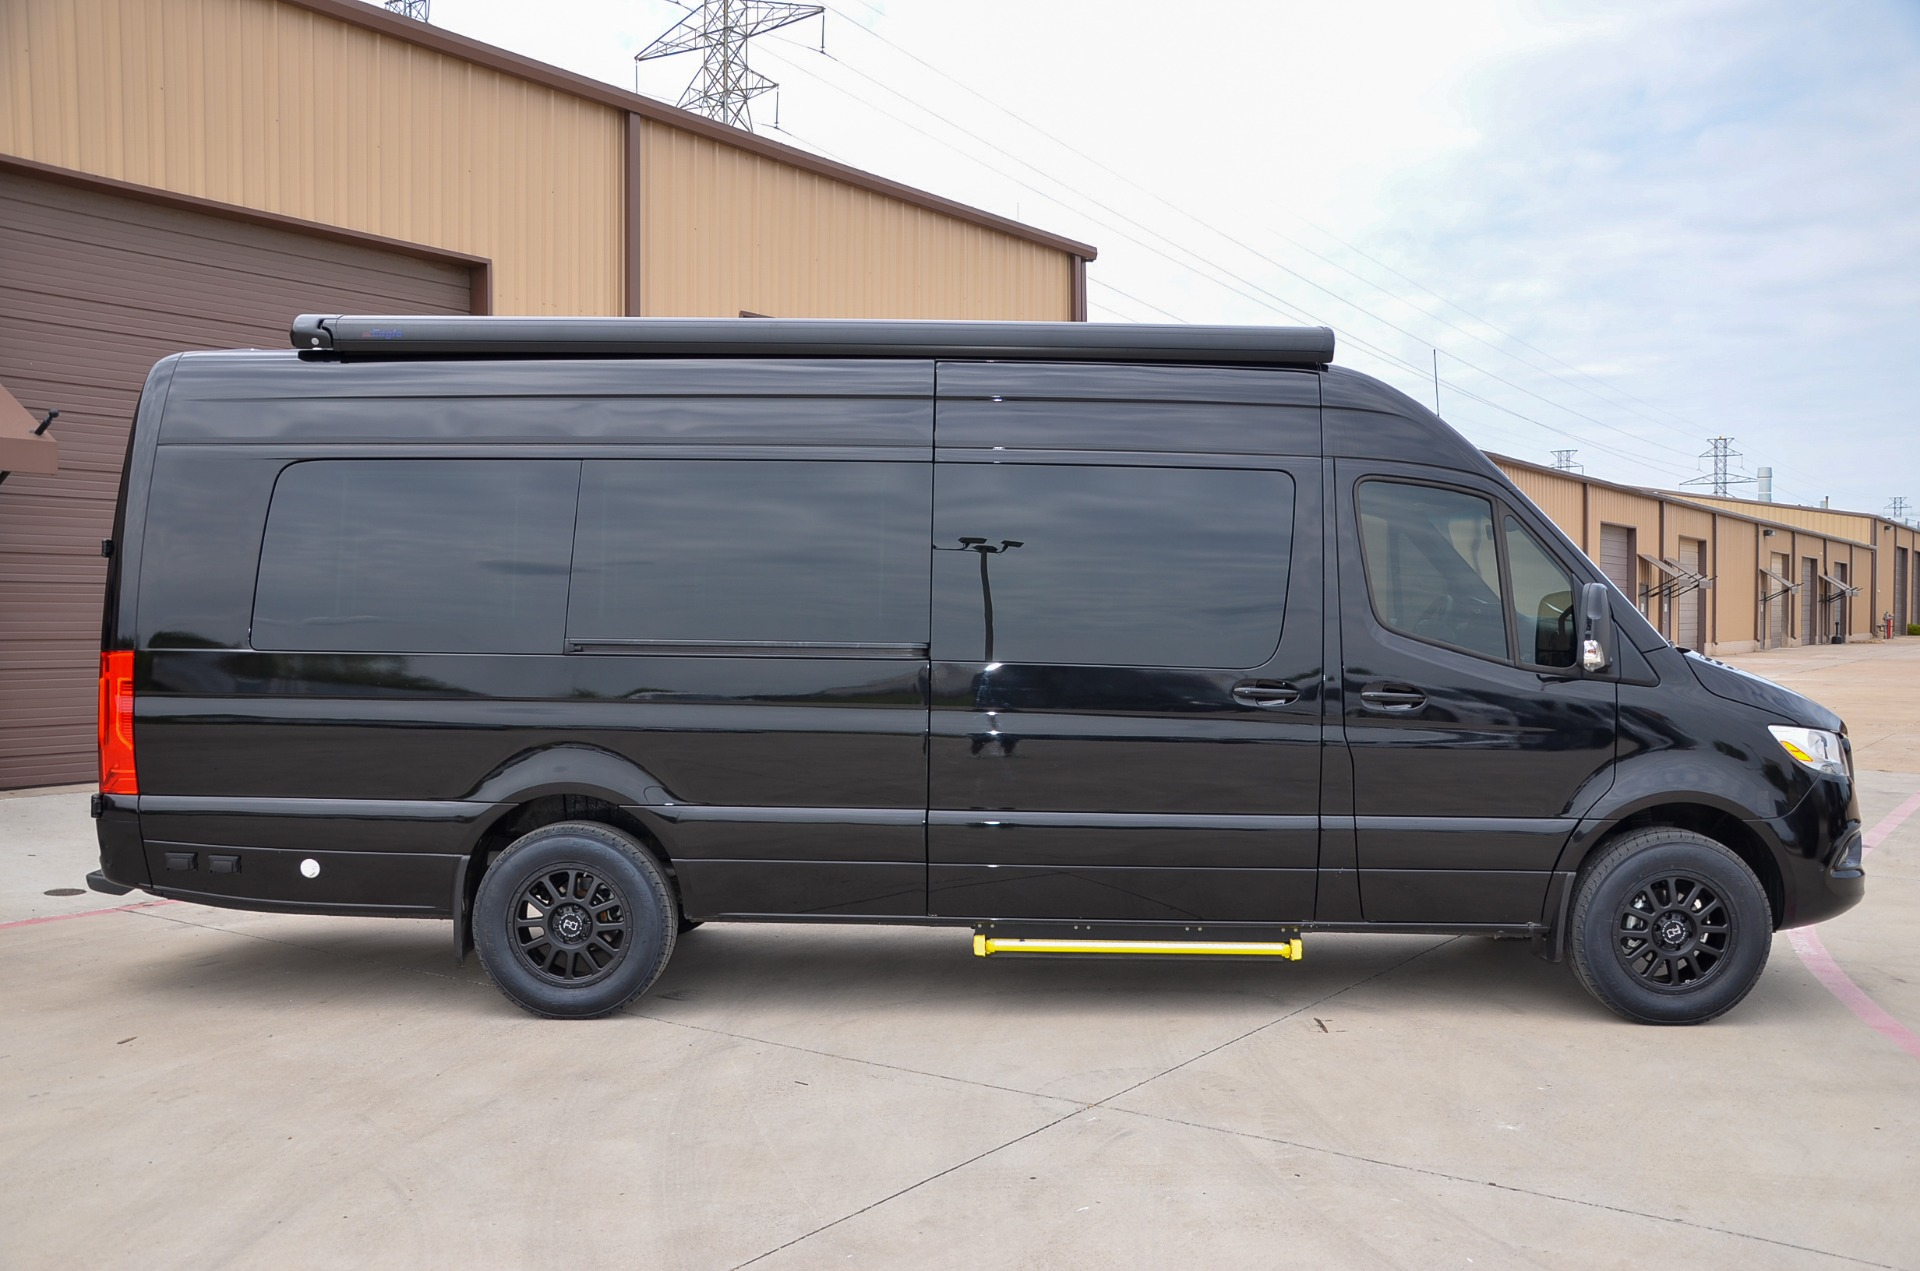 New 2019 Mercedes-Benz Sprinter Iconic BusinessLounge 170 EXT 3500 for sale Call for price at Iconic Sprinters in Fort Worth TX 76106 1